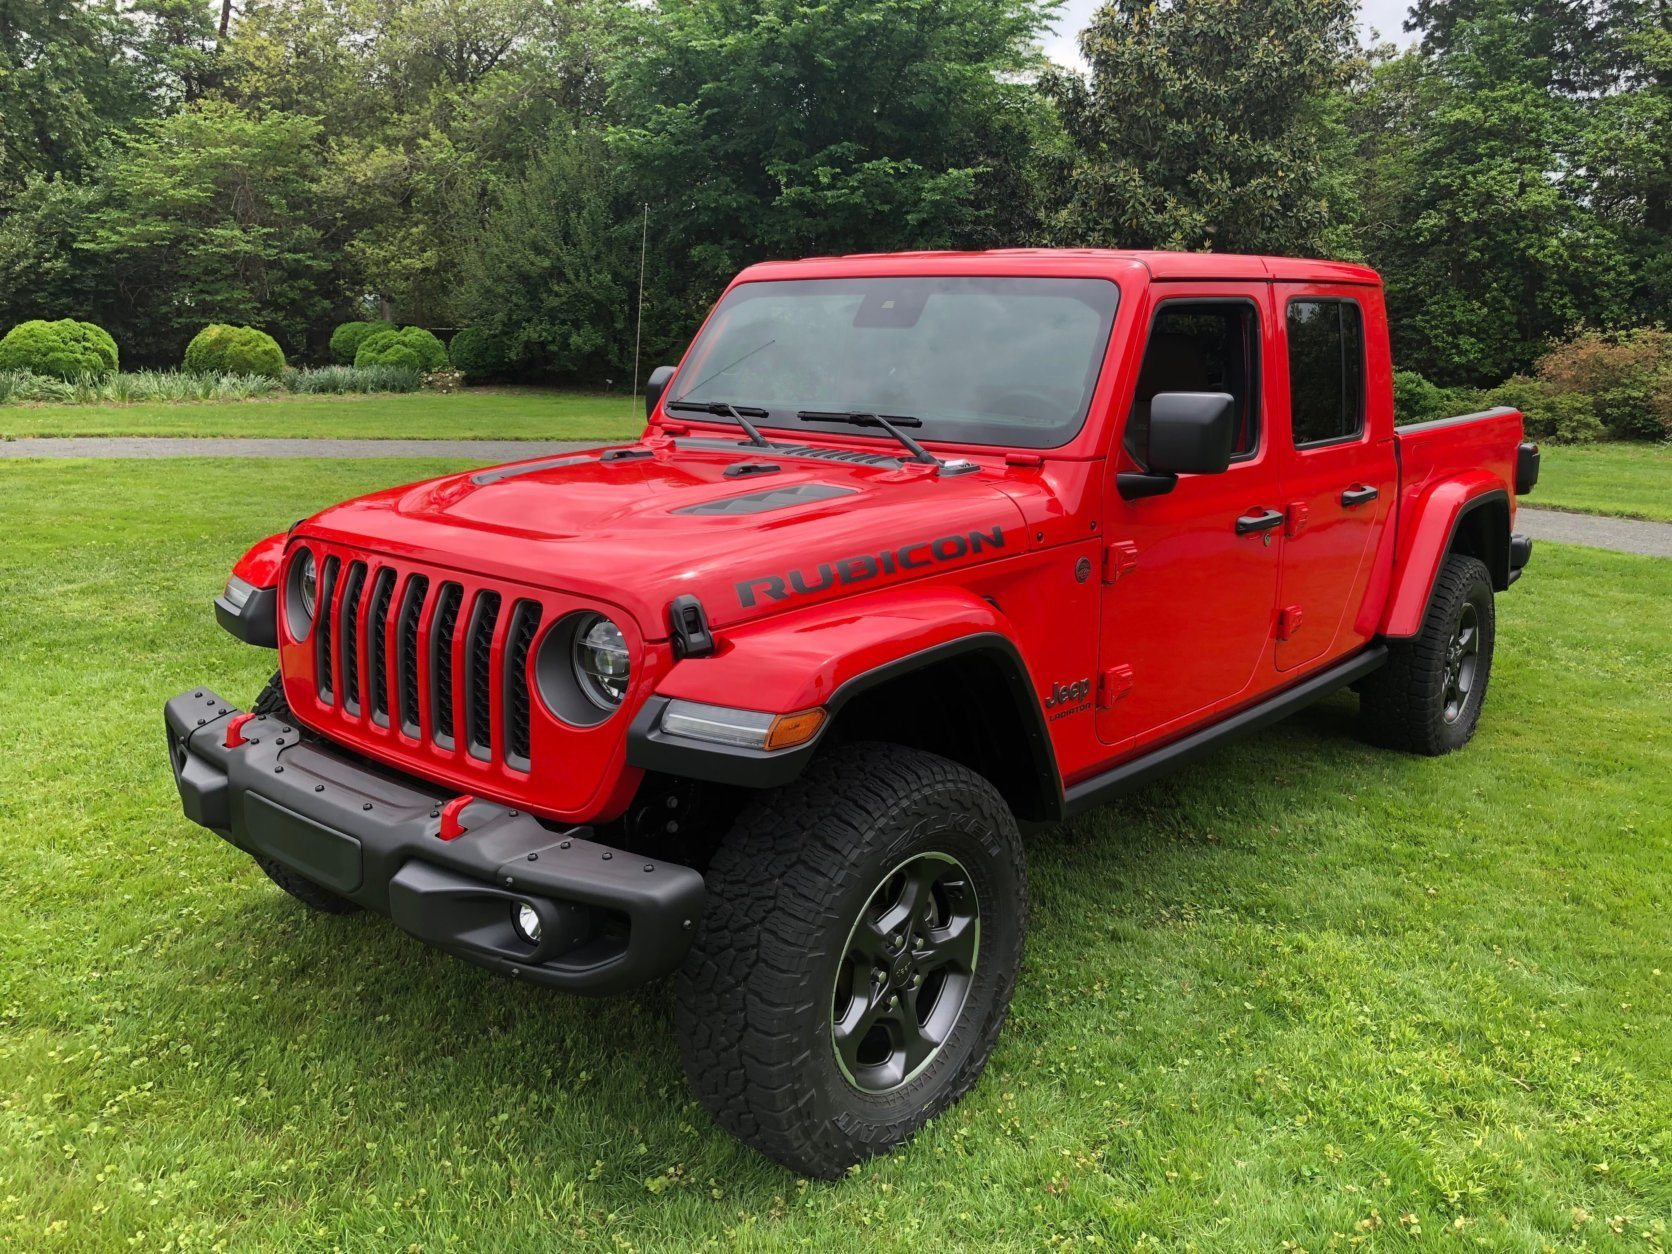 The 2020 Jeep Gladiator is now on sale. (WTOP/John Aaron)